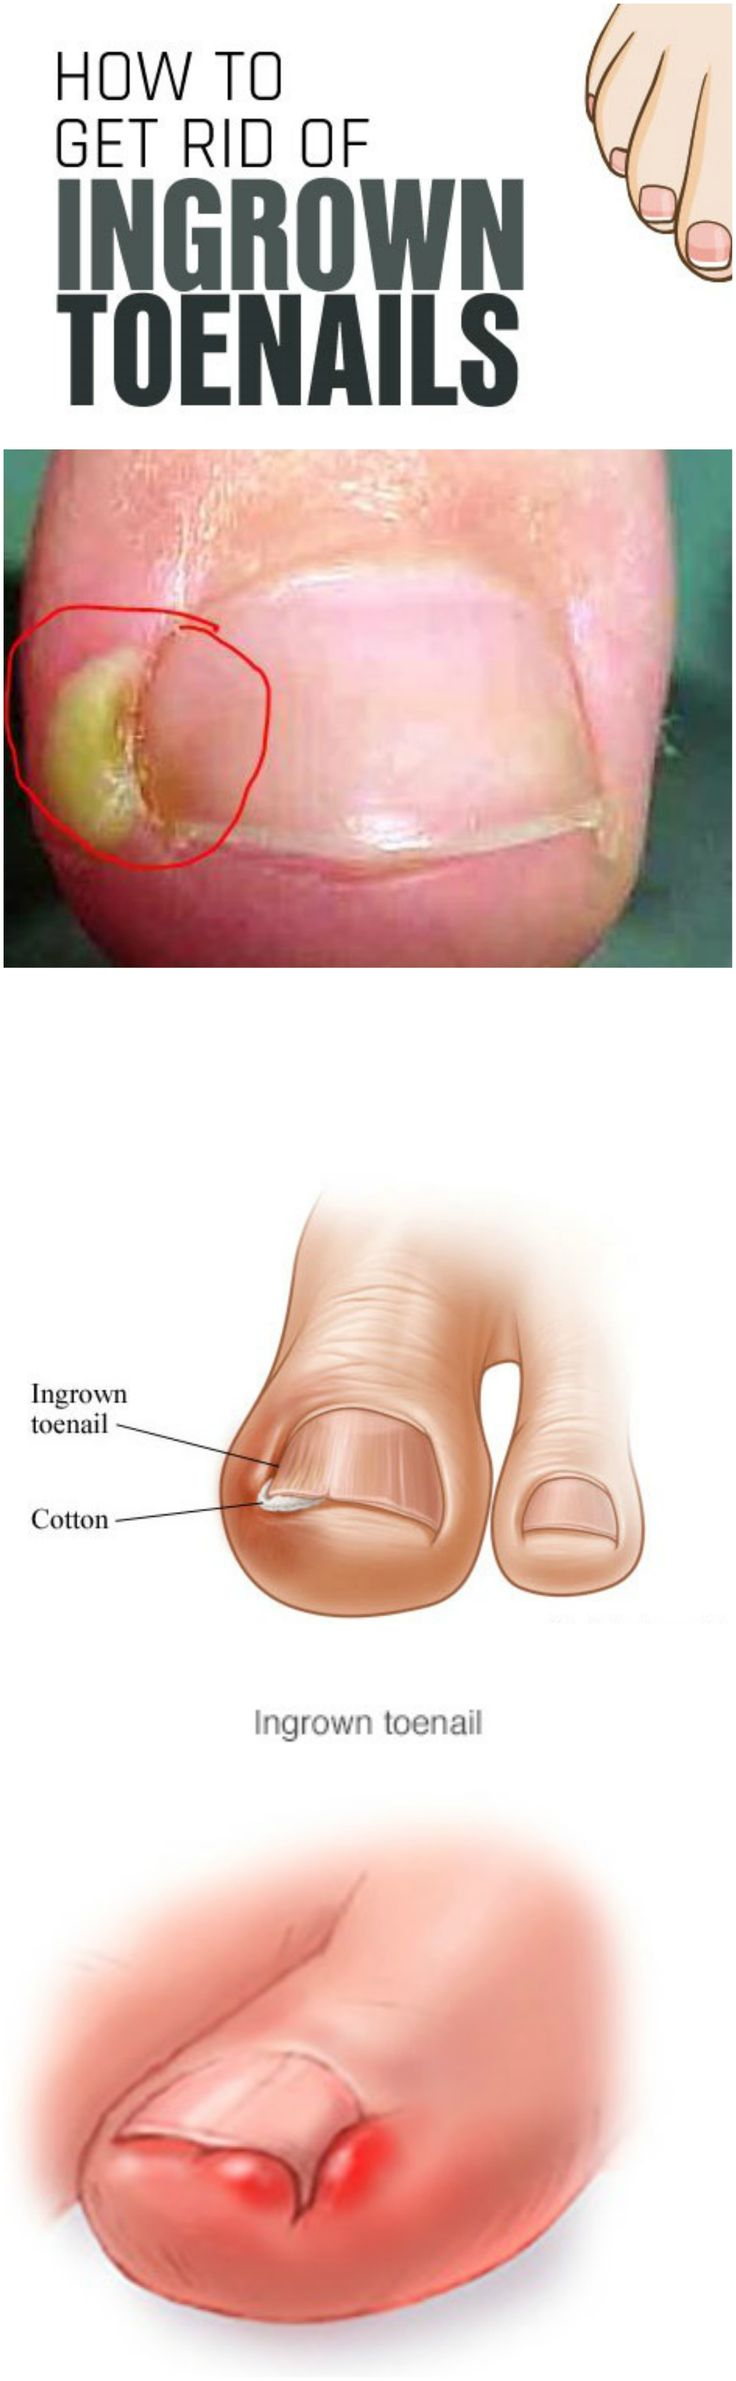 The ingrown toenail is a chronic disease in which, for various reasons, there is an ingrowth of one or both of the side edges of…#treatment #ingrown #toenails #healthy #tip